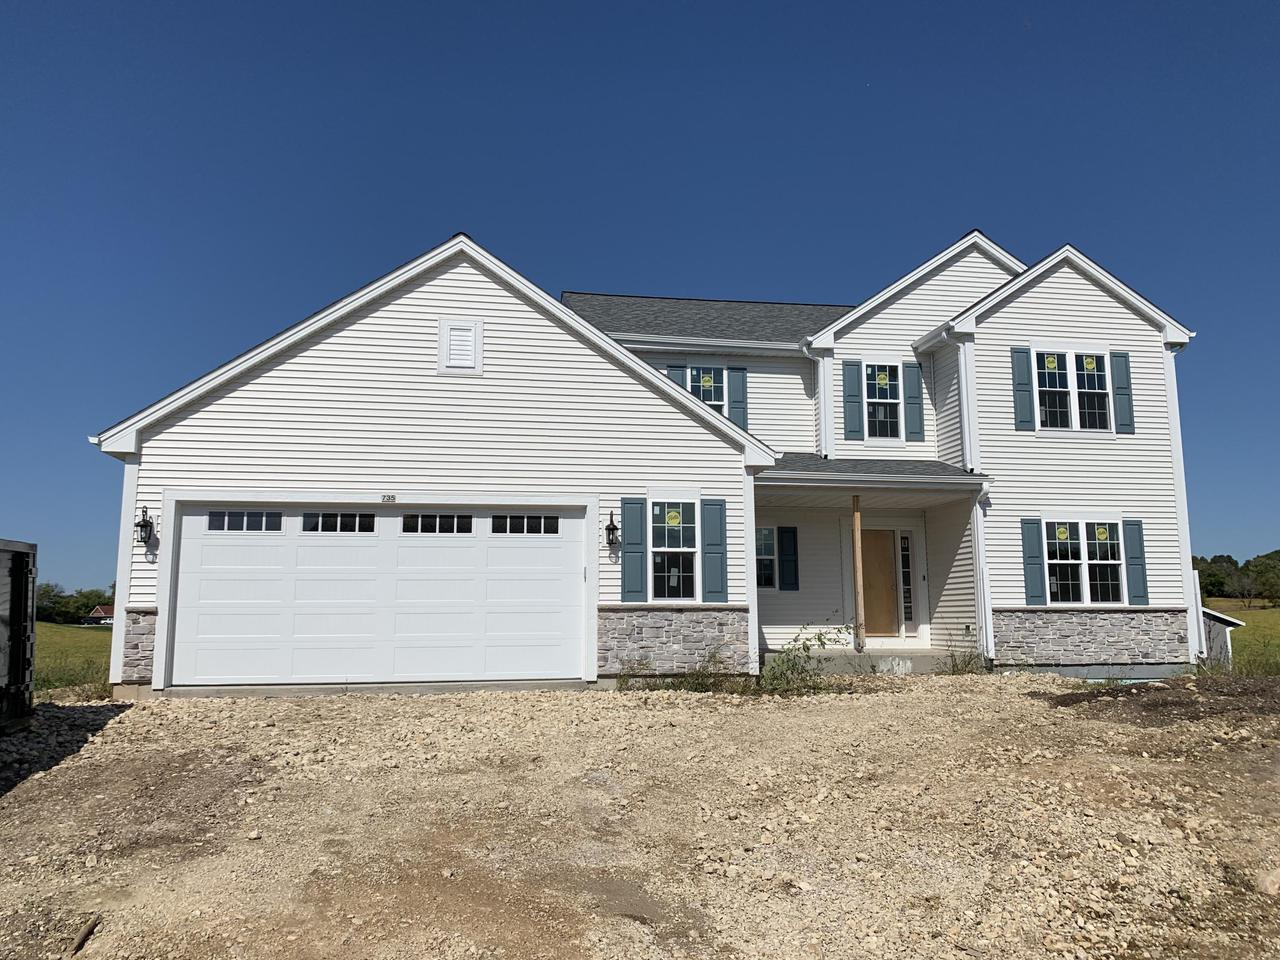 NEW CONSTRUCTION by Stepping Stone homes. $2500 buyer closing cost credit OR credit towards a patio/deck for an accepted offer by 10/31! The Camden offers lots of space in an anything but traditional two story home. Spacious MBR w/private MBA & HUGE walk in closet. Open concept kitchen/living room w/fireplace and patio door off dining area. 2x6 exterior framing and upgrades like soft close dovetail cabinetry, quartz/marble counter tops, double sinks in the bathrooms, upgraded flooring, 8 ft GA doors & more! Full sized windows in LL! This home comes equipped with Smart Home Technology, including integrated lighting, door locks, ecobee smart thermostat, video doorbell, Lift Master garage door, all of which you can control from your mobile device.  Smart home technology at it's best.